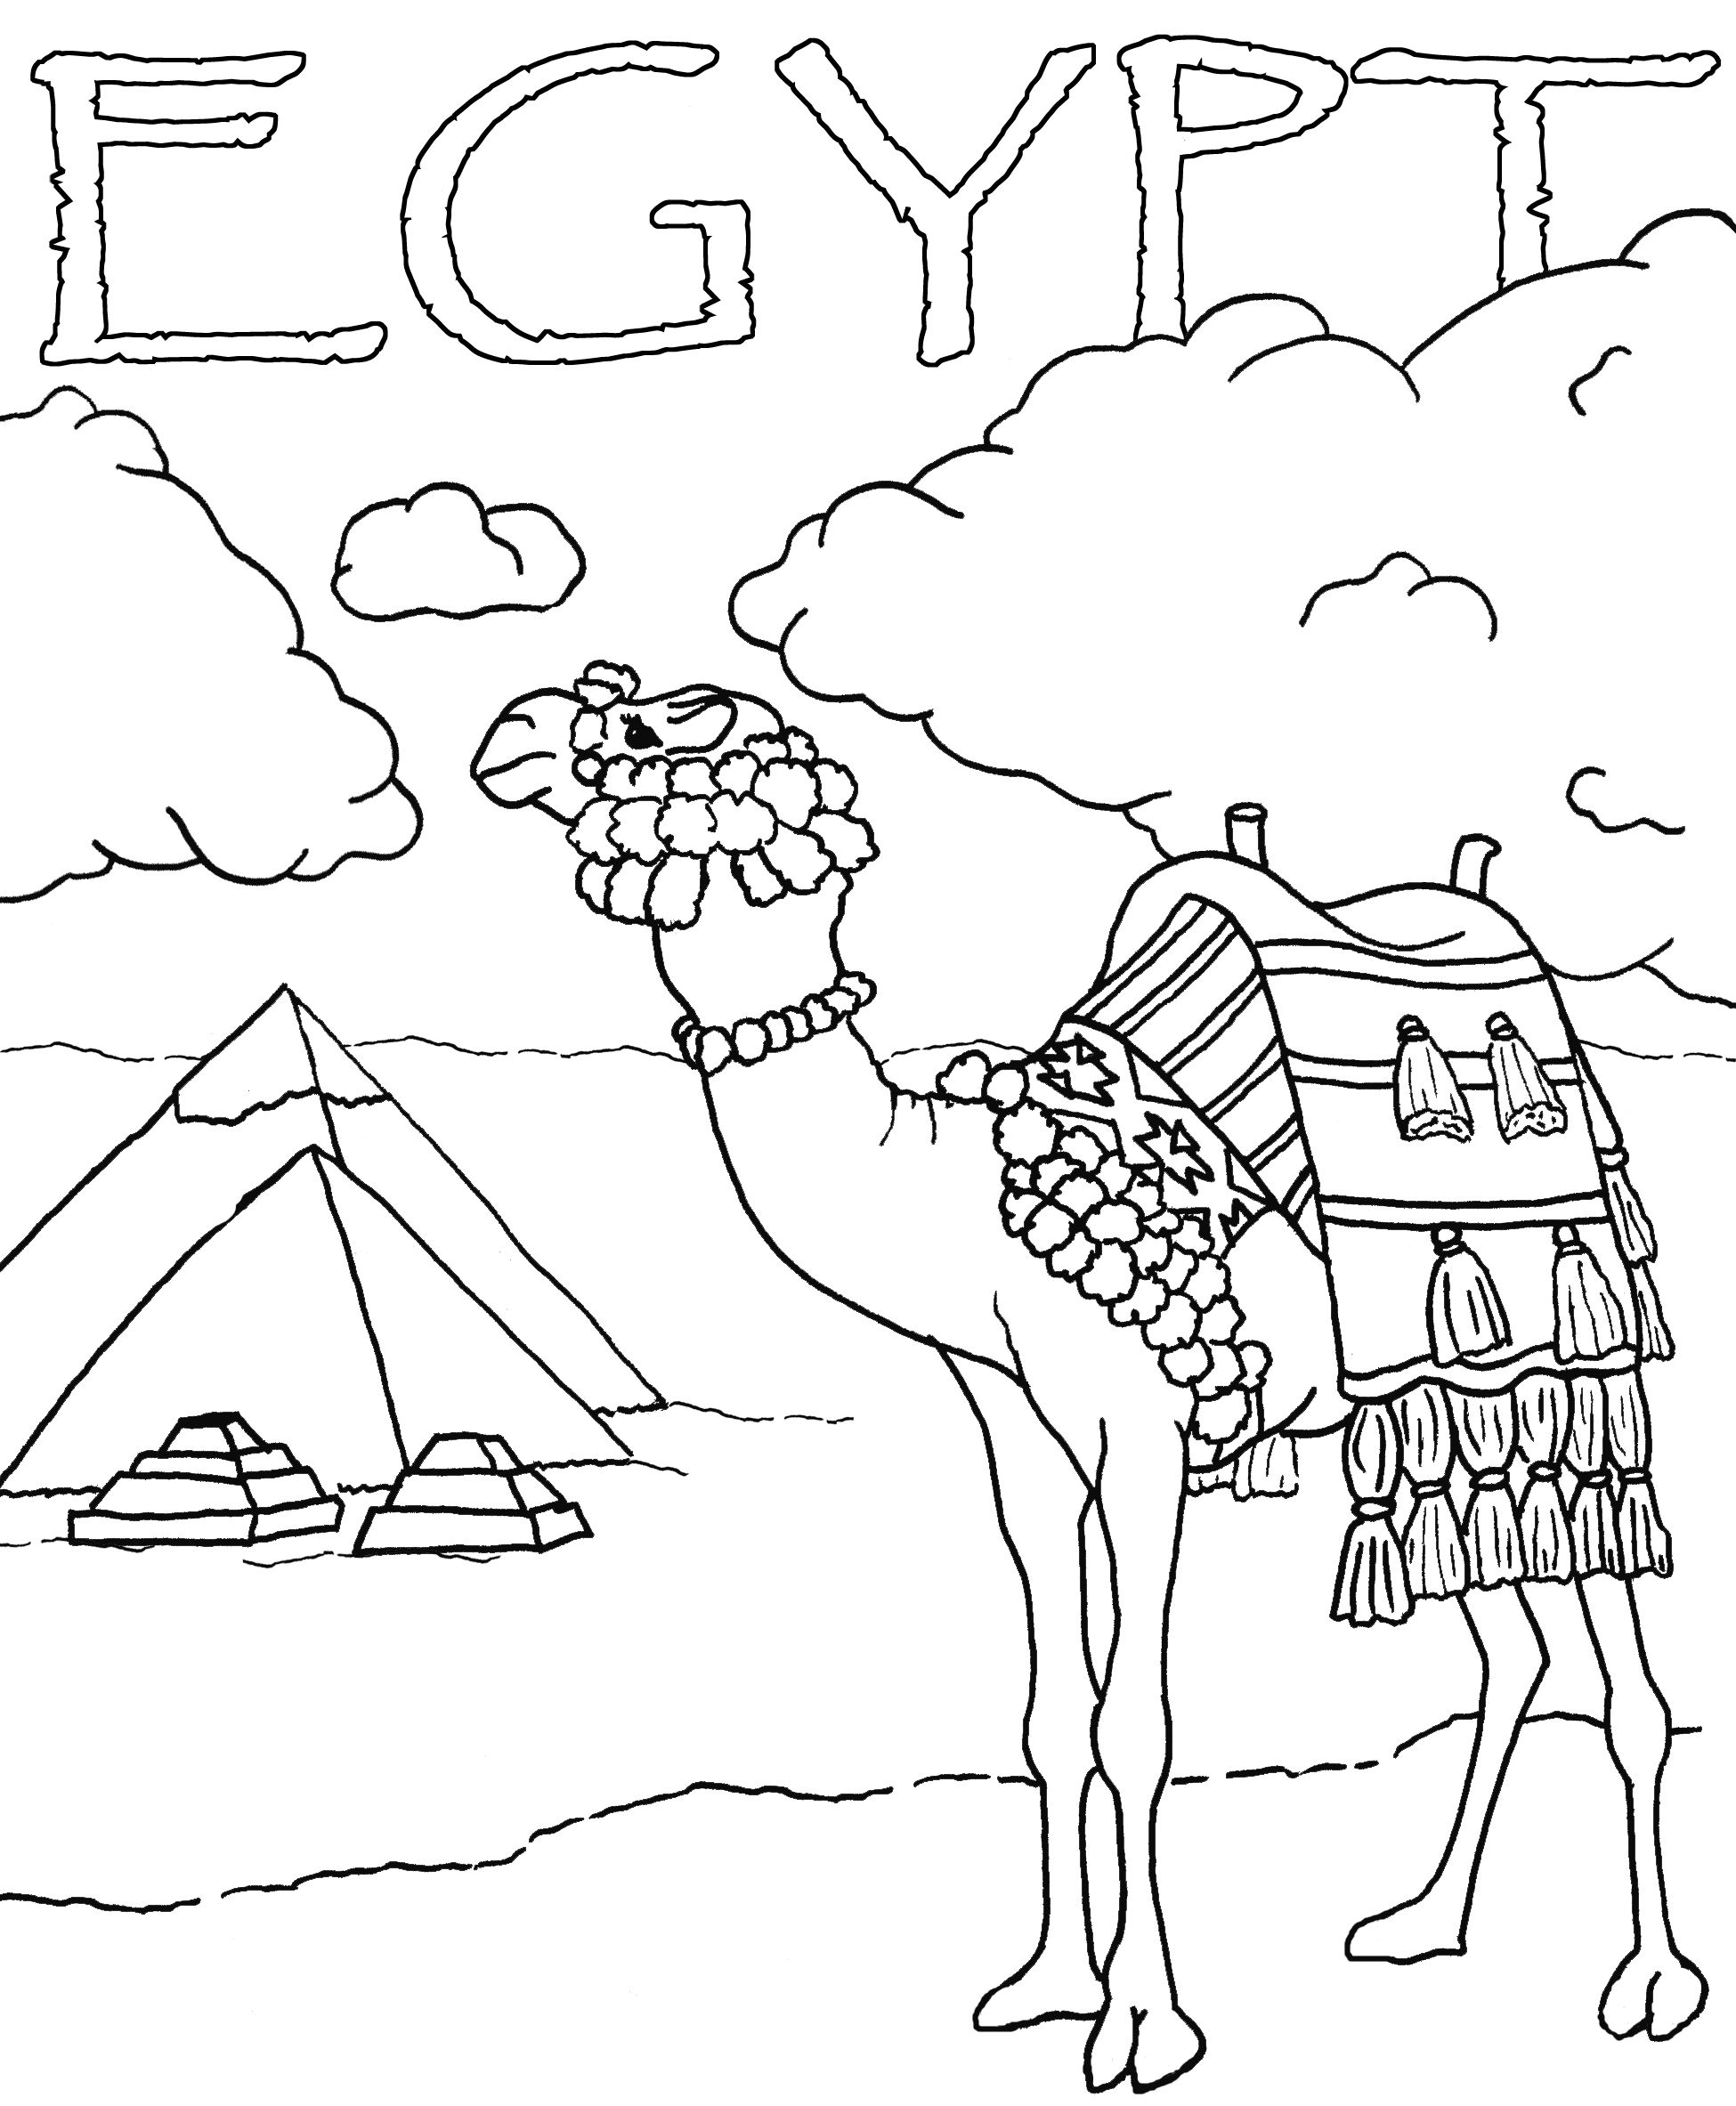 Ancient Egyptians Did Not Worship The One True God Read About Their Beliefs And Find Egypt Coloring Pa Ancient Egypt Art Coloring Pages Ancient Egypt For Kids [ 2366 x 1950 Pixel ]